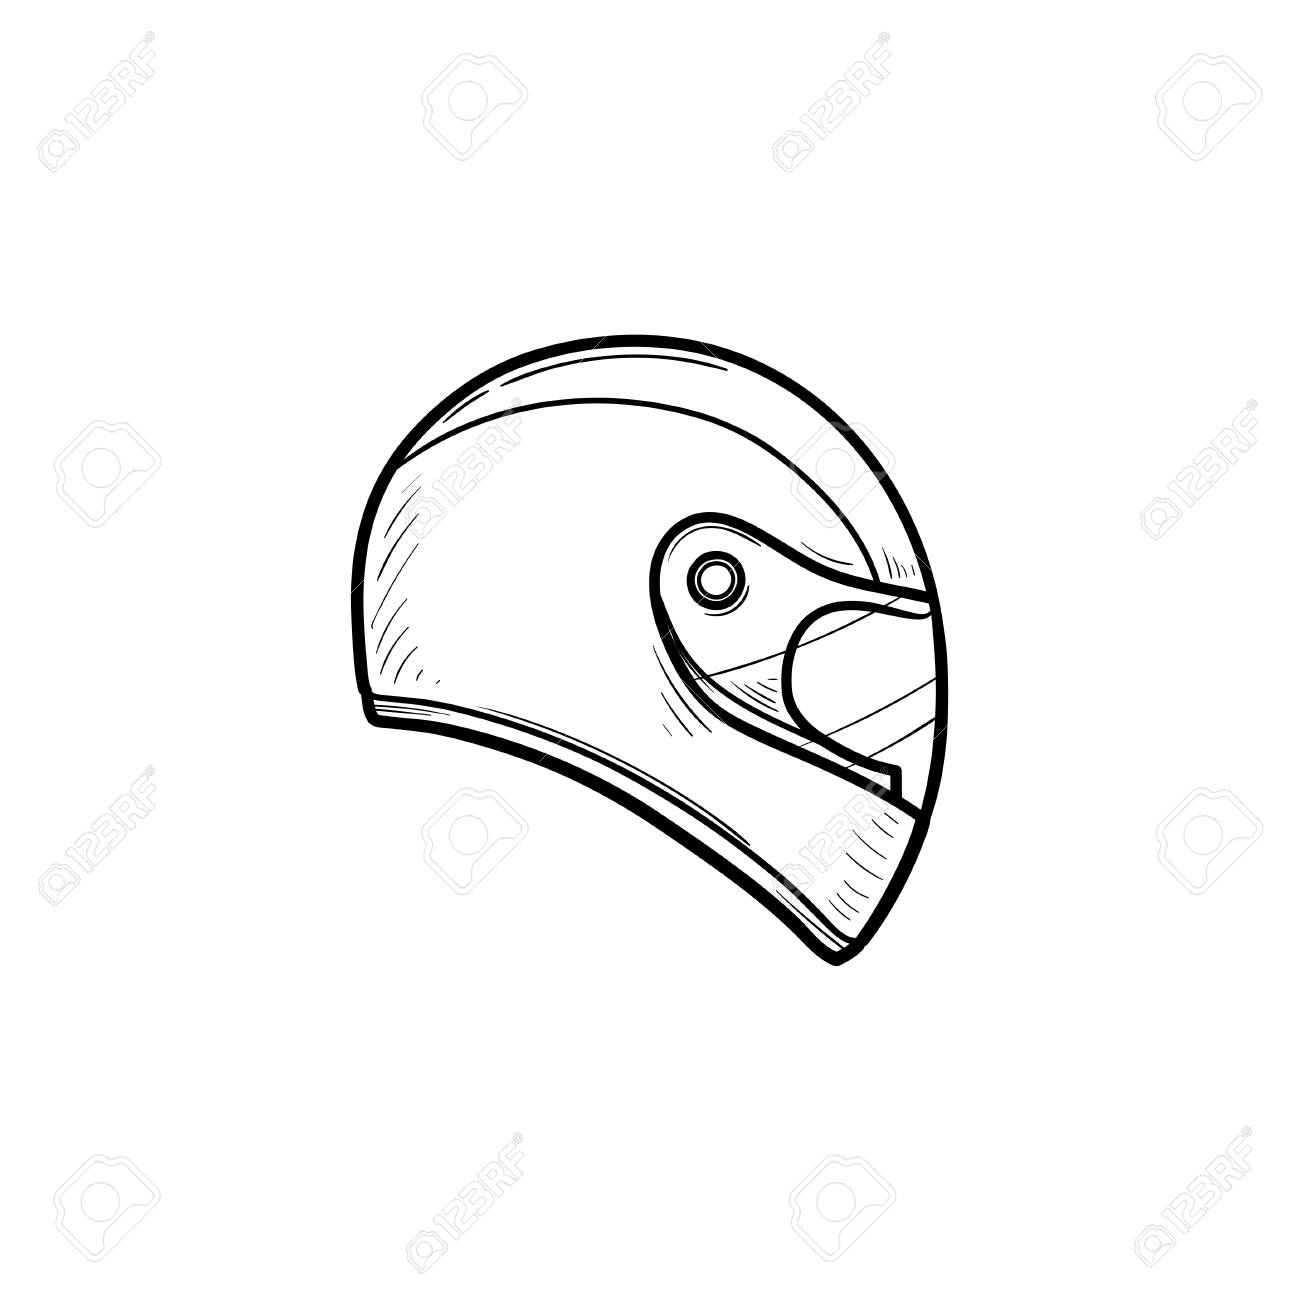 Motorcycle Helmet Hand Drawn Outline Doodle Icon Motorbike Protection